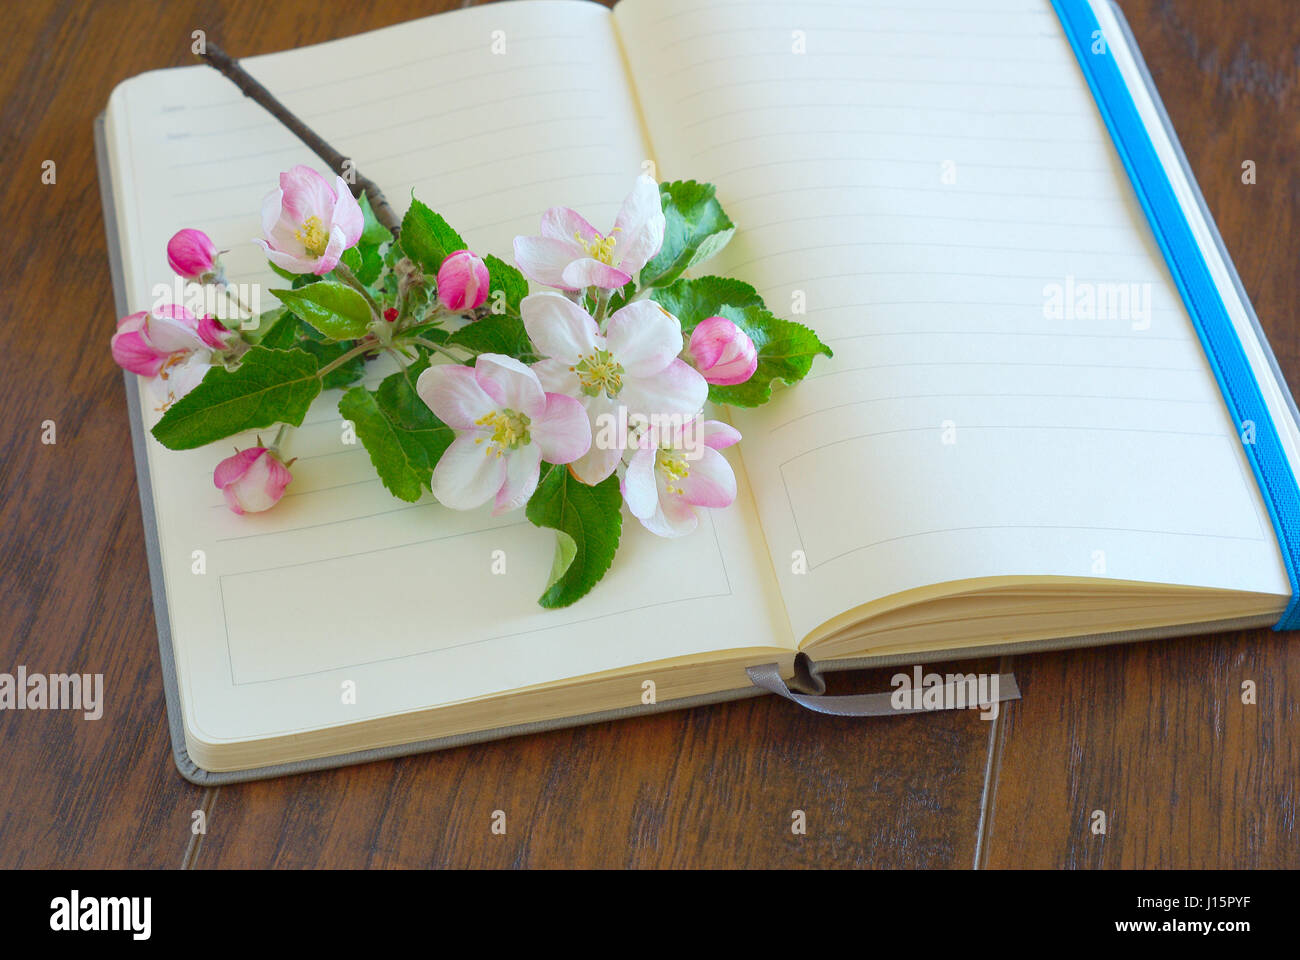 Flower spting blossom on blank diary page romantic lyrics notebook flower spting blossom on blank diary page romantic lyrics notebook greeting writing paper open notepaper book with copy space mightylinksfo